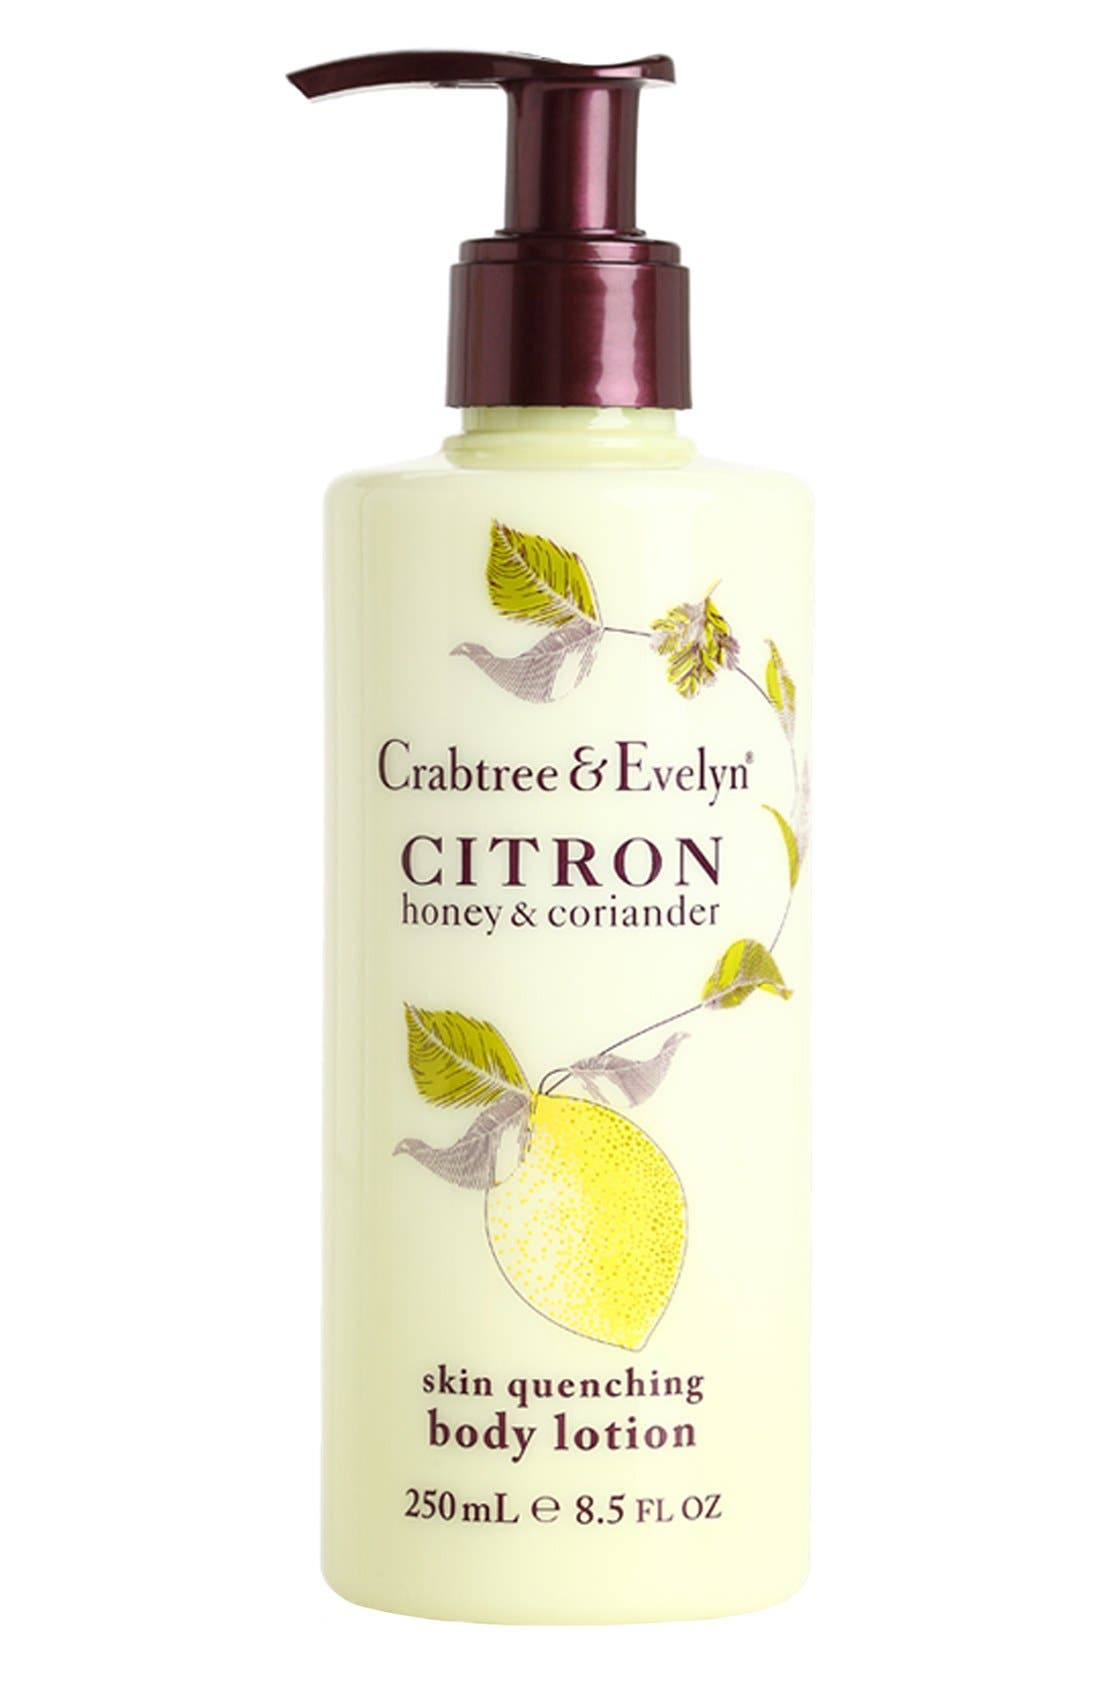 Crabtree & Evelyn 'Citron, Honey & Coriander' Skin Quenching Body Lotion